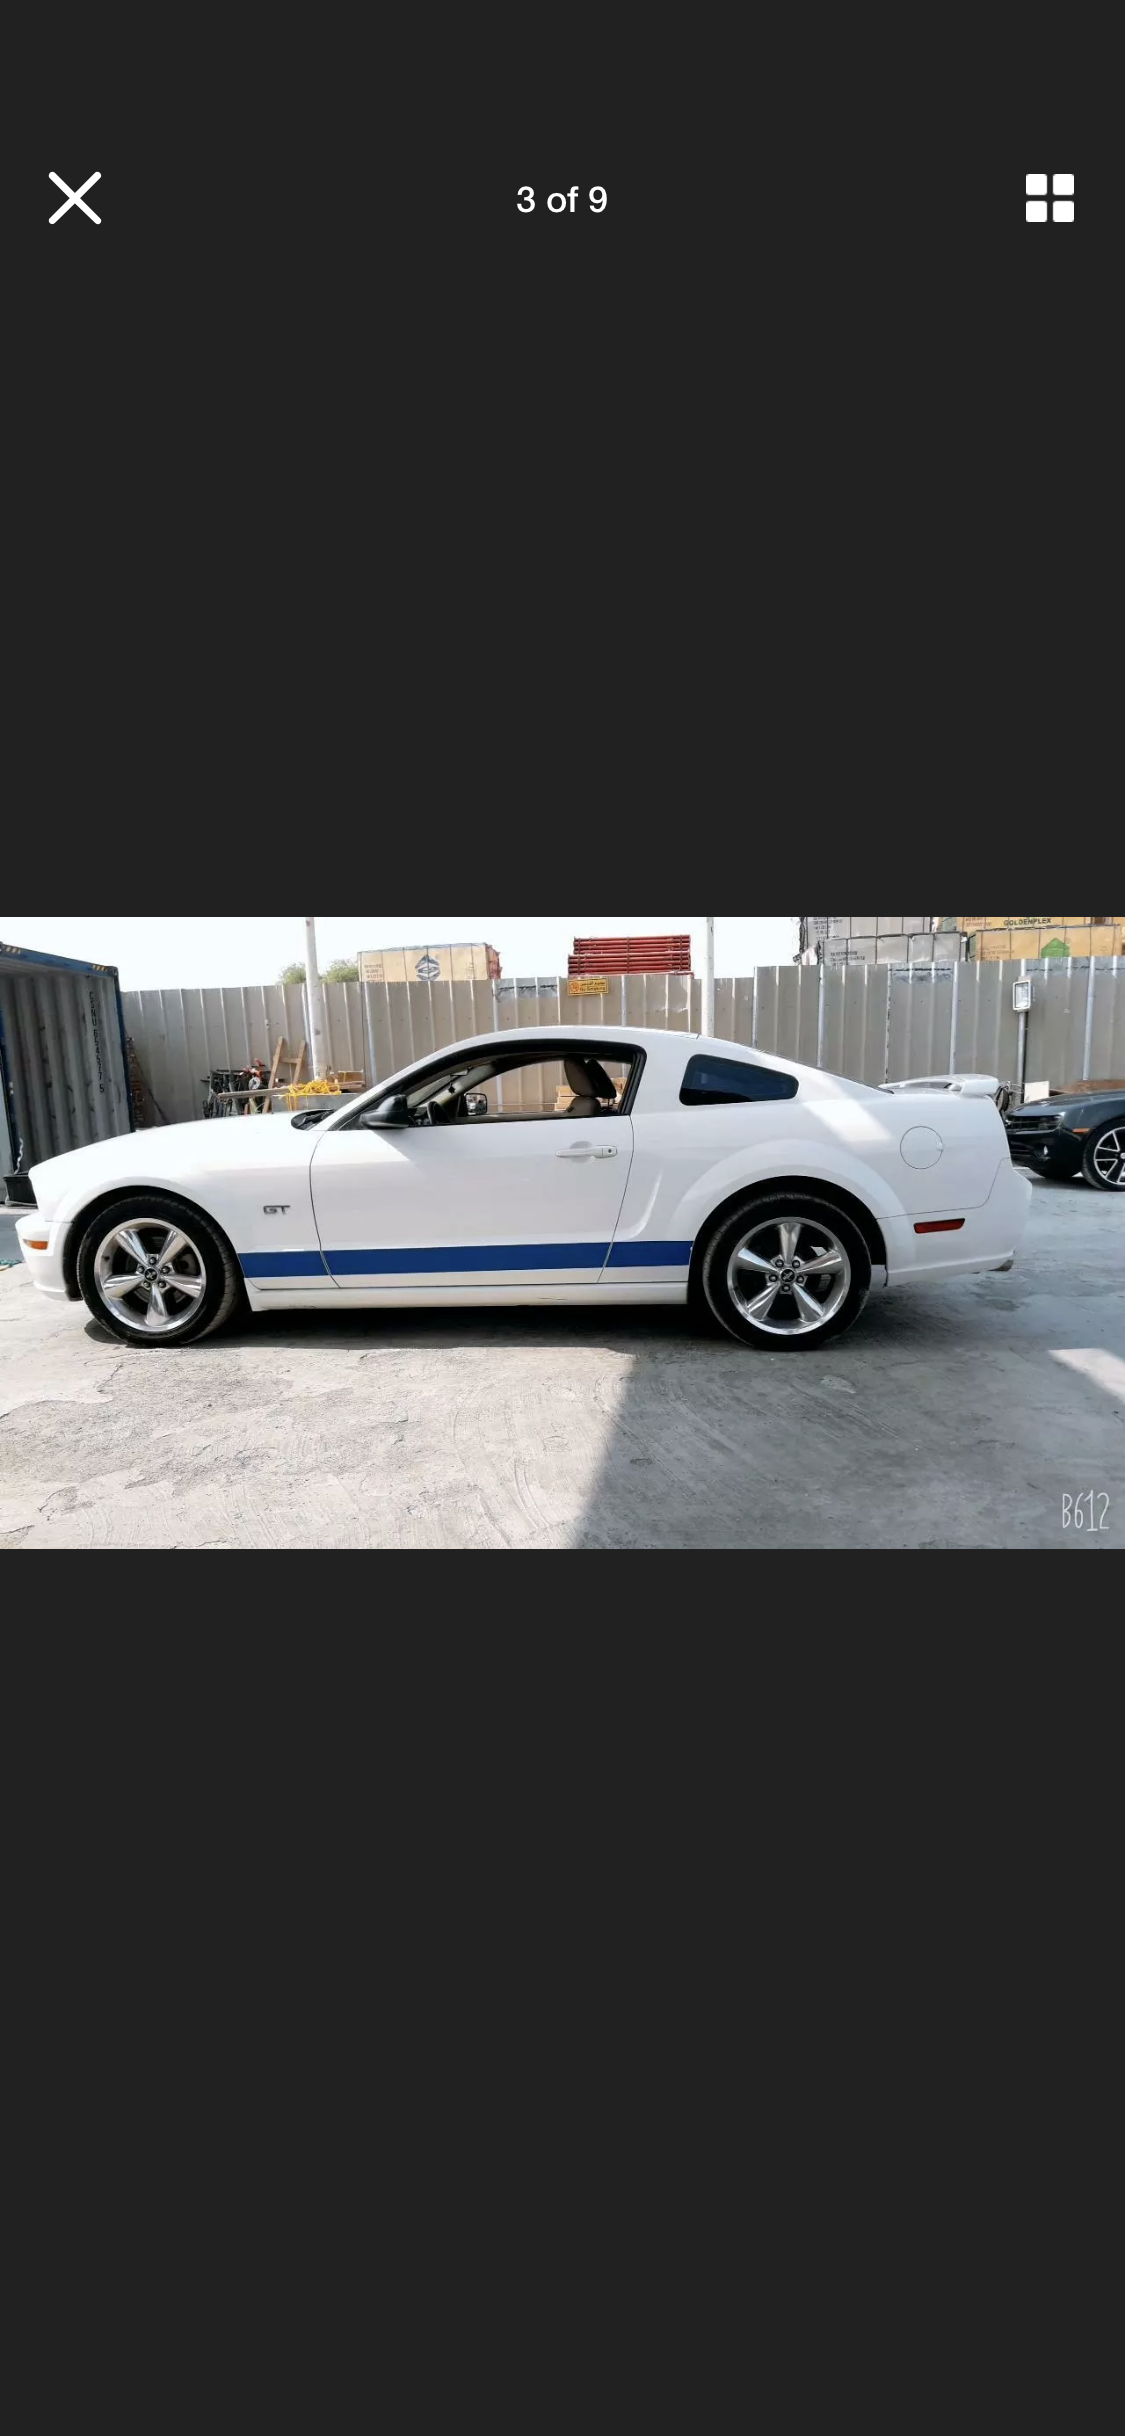 2005 FORD MUSTANG 4.6 V8 GT WHITE LHD FRESH IMPORT For Sale (picture 3 of 6)